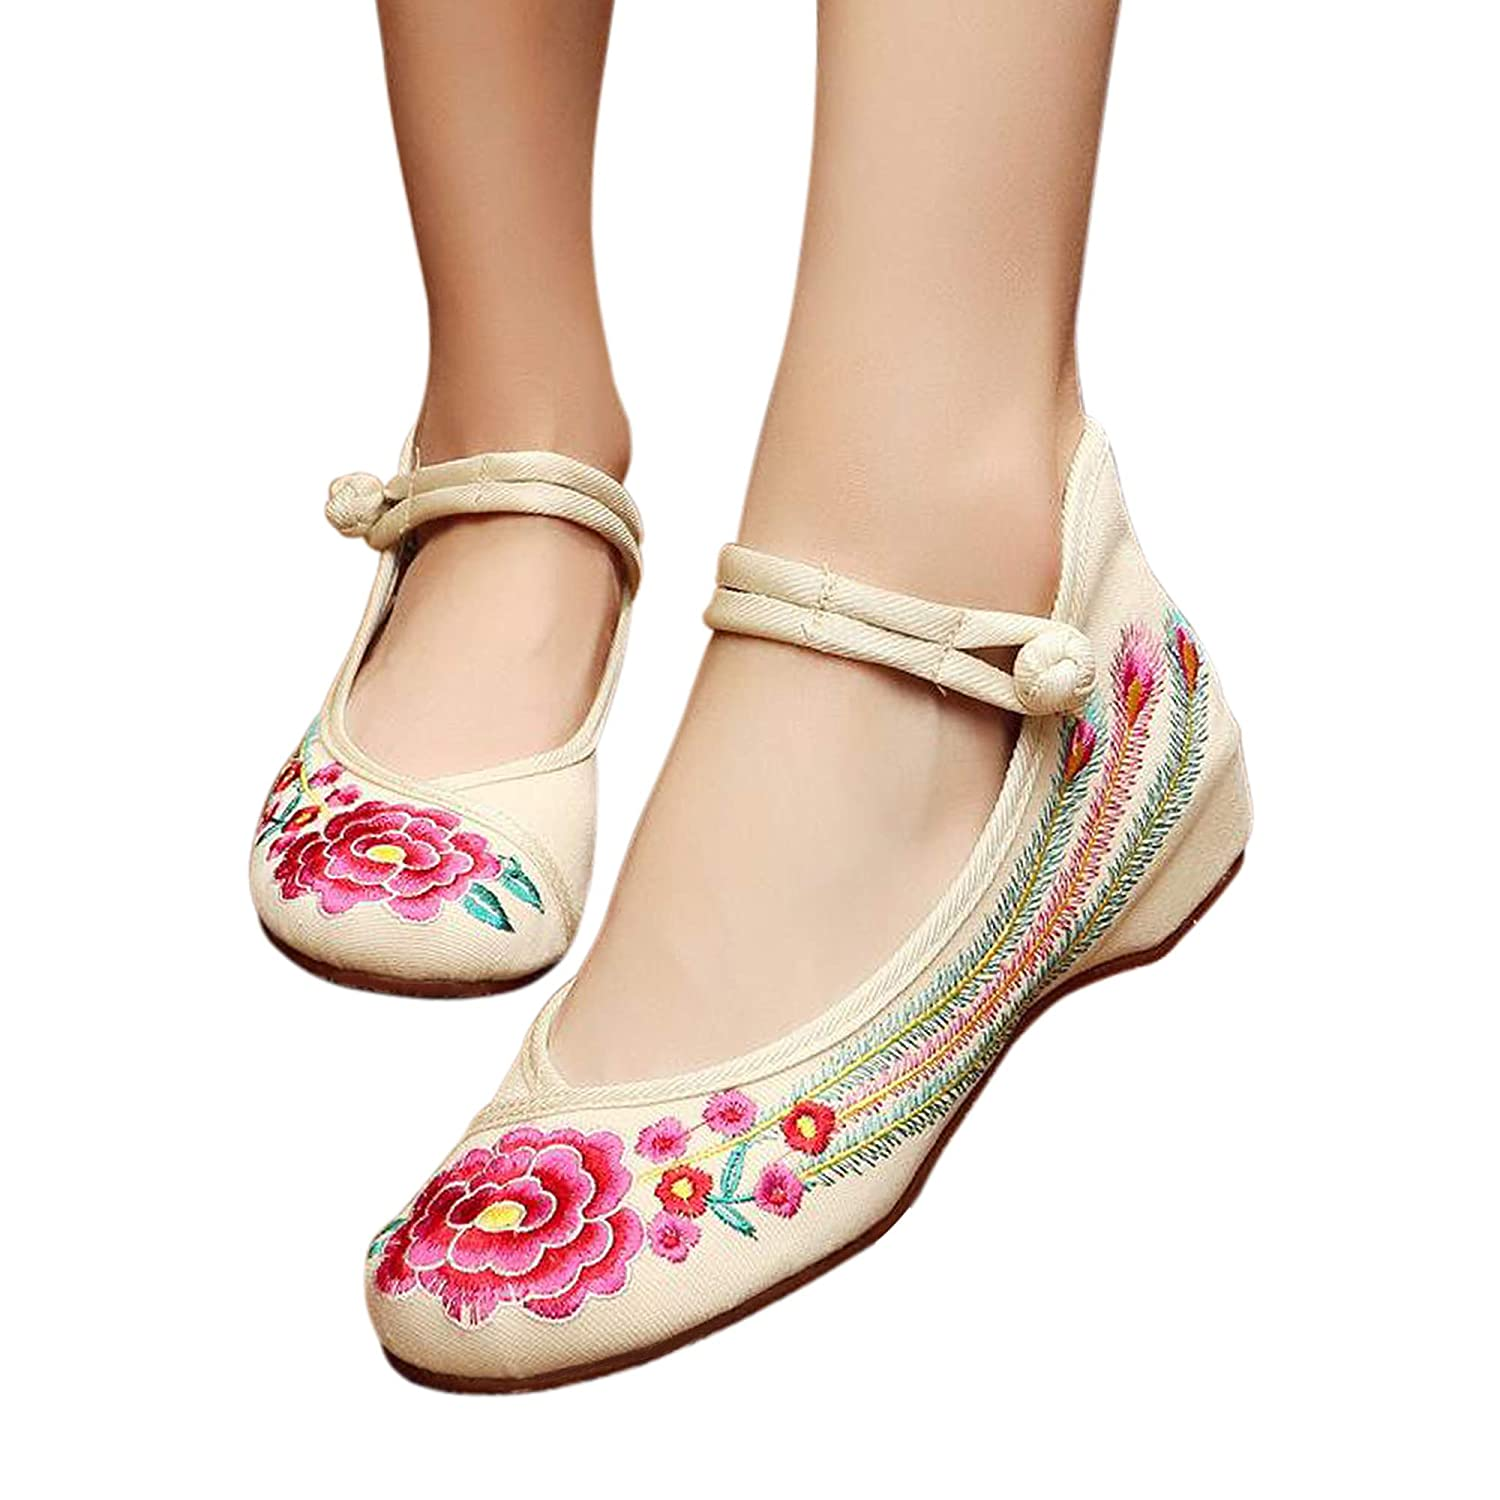 bab84916c Clothing, Shoes & Jewelry CINAK Embroidered Flats Shoes Womens Chinese  Embroidery Ballet Lofers Slip on Comfortable Bohemia Shoes